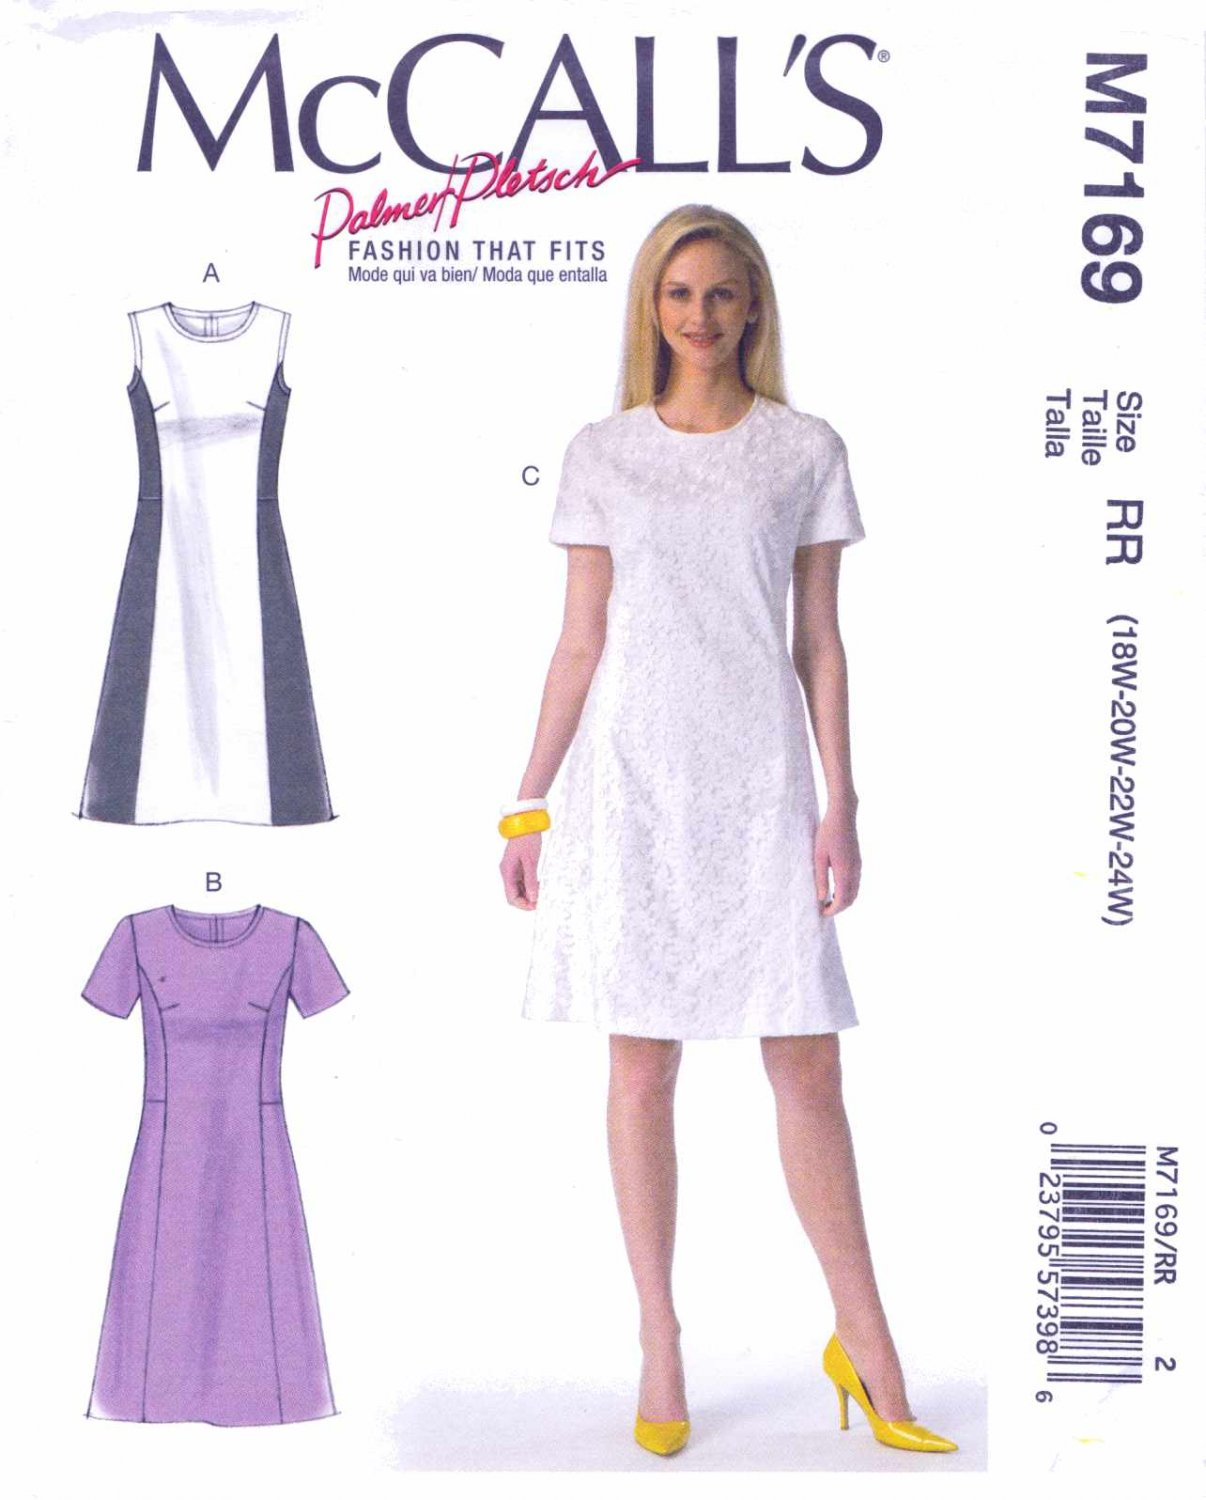 McCall's Sewing Pattern 7169 Women's Size 18W-24W Palmer/Pletsch Classic A-Line Dress Sleeve Options